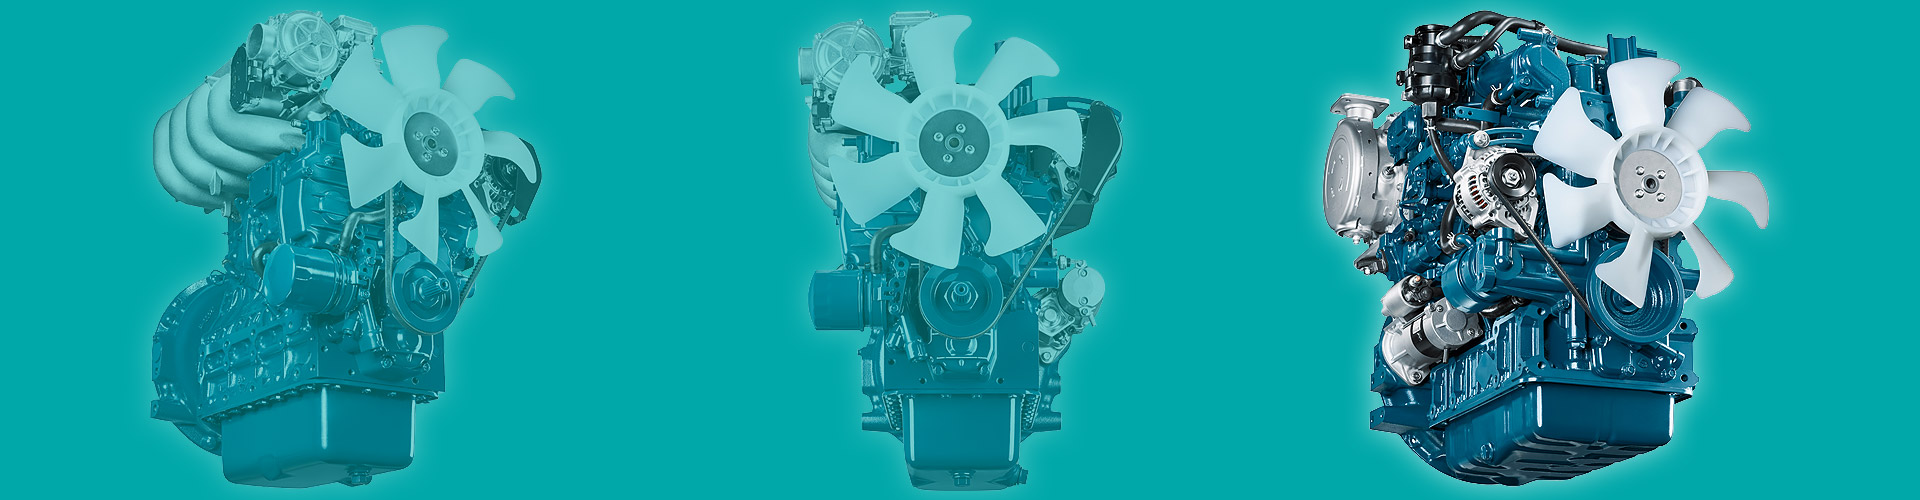 DIESEL ENGINES FOR INDUSTRIAL MACHINERY